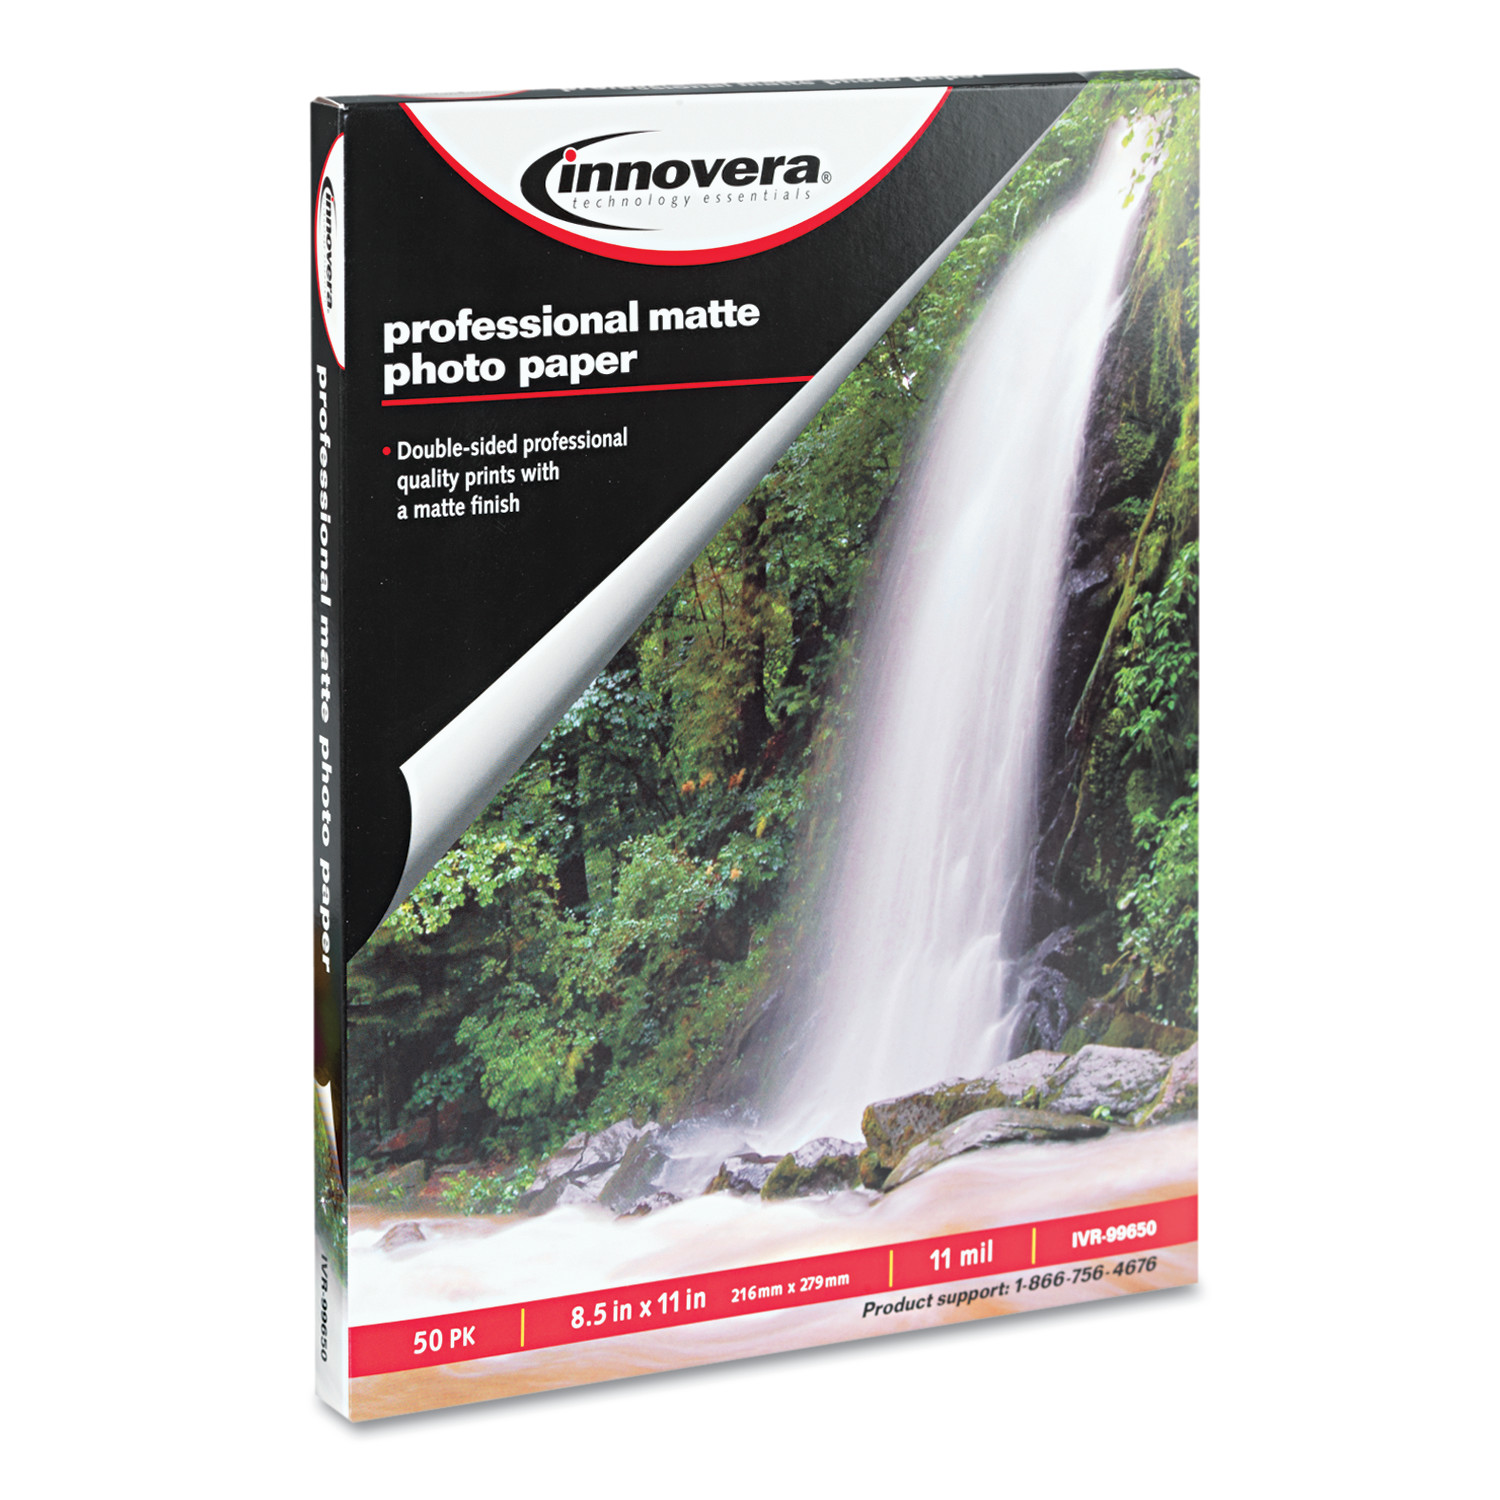 Innovera Heavyweight Photo Paper, Matte, 8-1/2 x 11, 50 Sheets/Pack -IVR99650